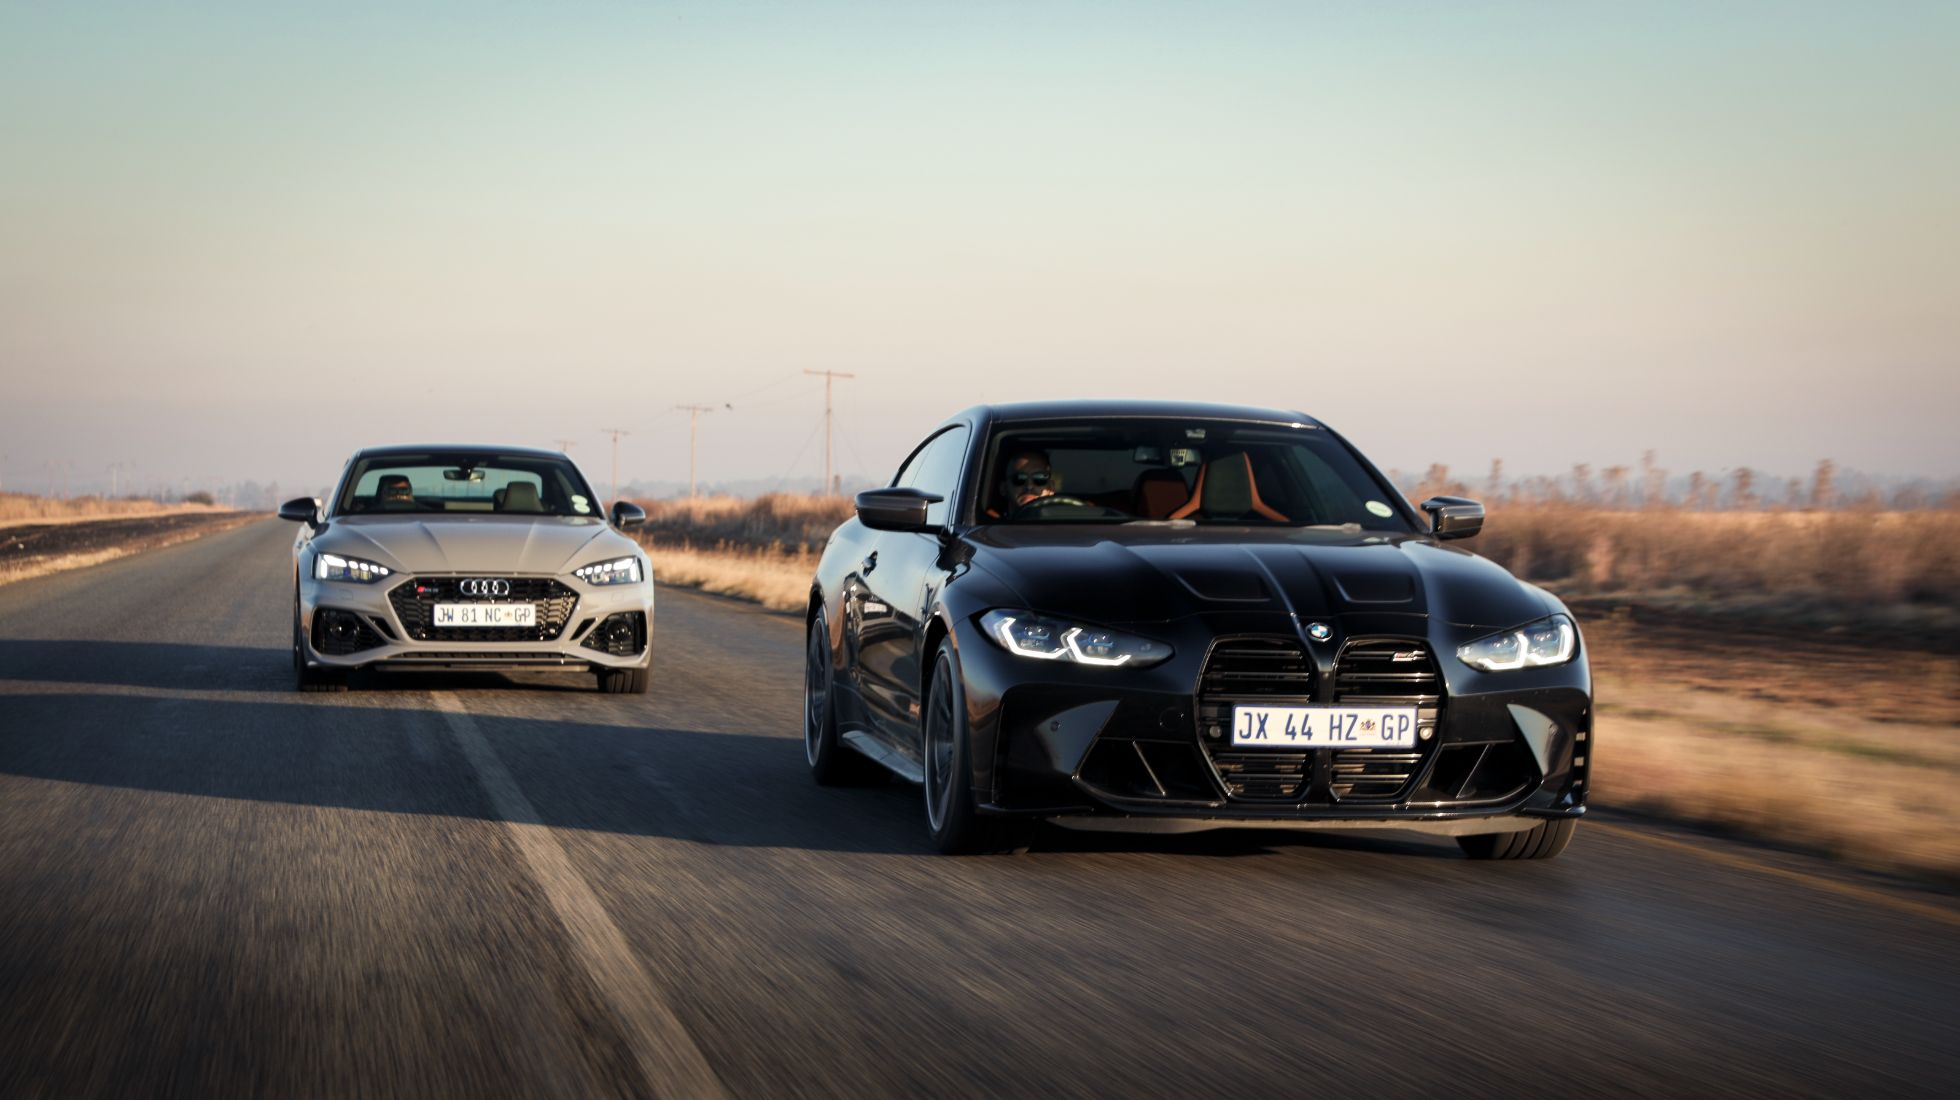 These two German brawlers are pitched at a similar market, one that places performance and styling on a higher pedestal than practicality and sense.